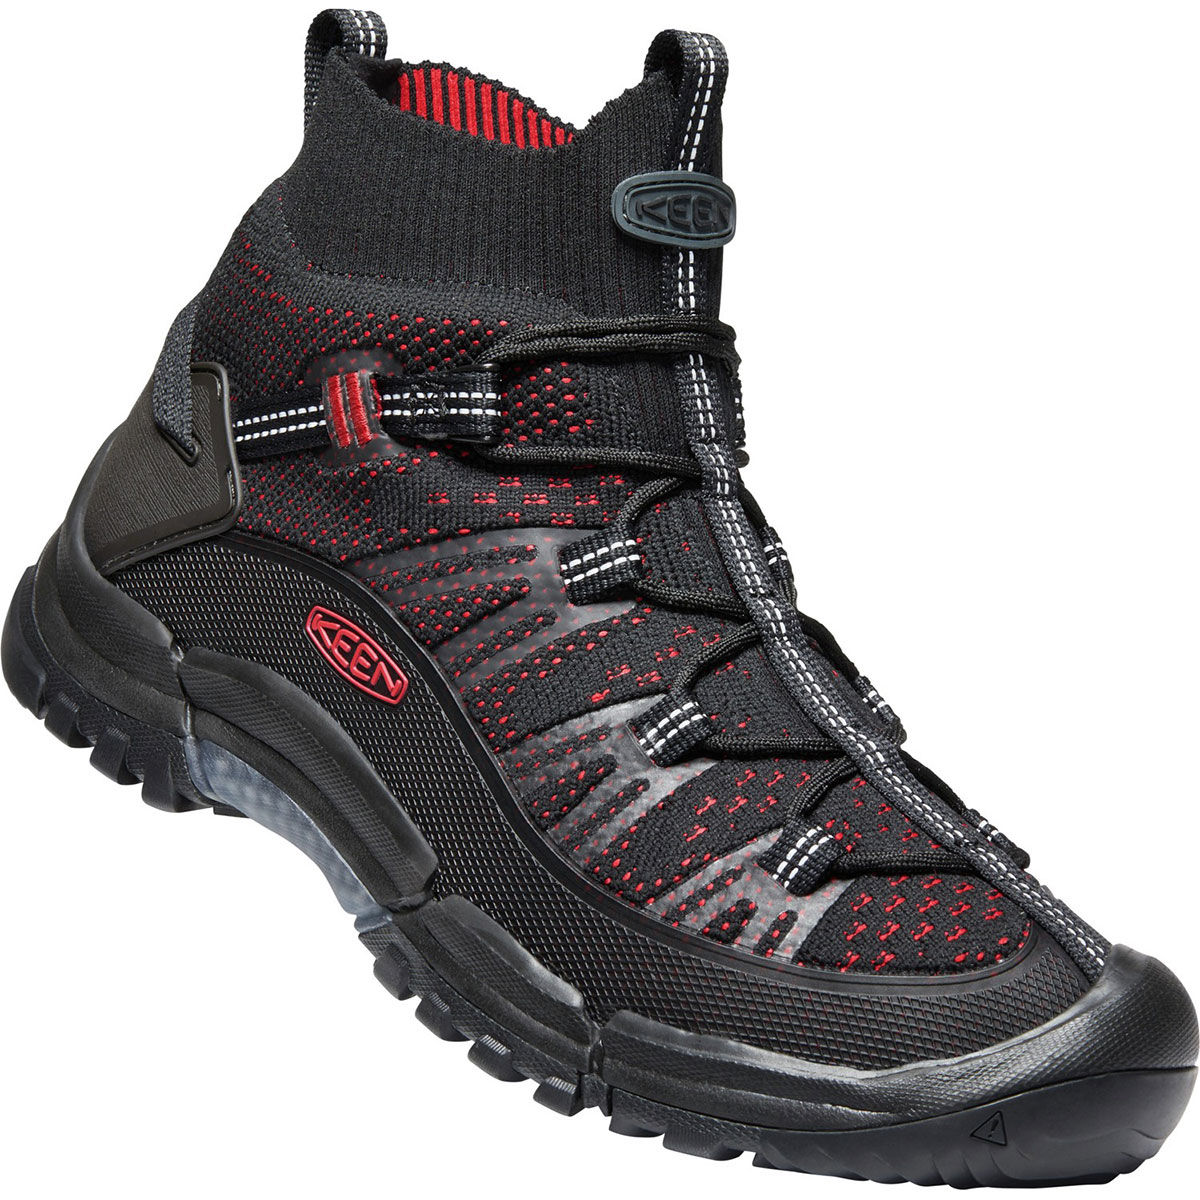 Keen Men's Axis Evo Mid Knit Hiking Boots - Black, 11